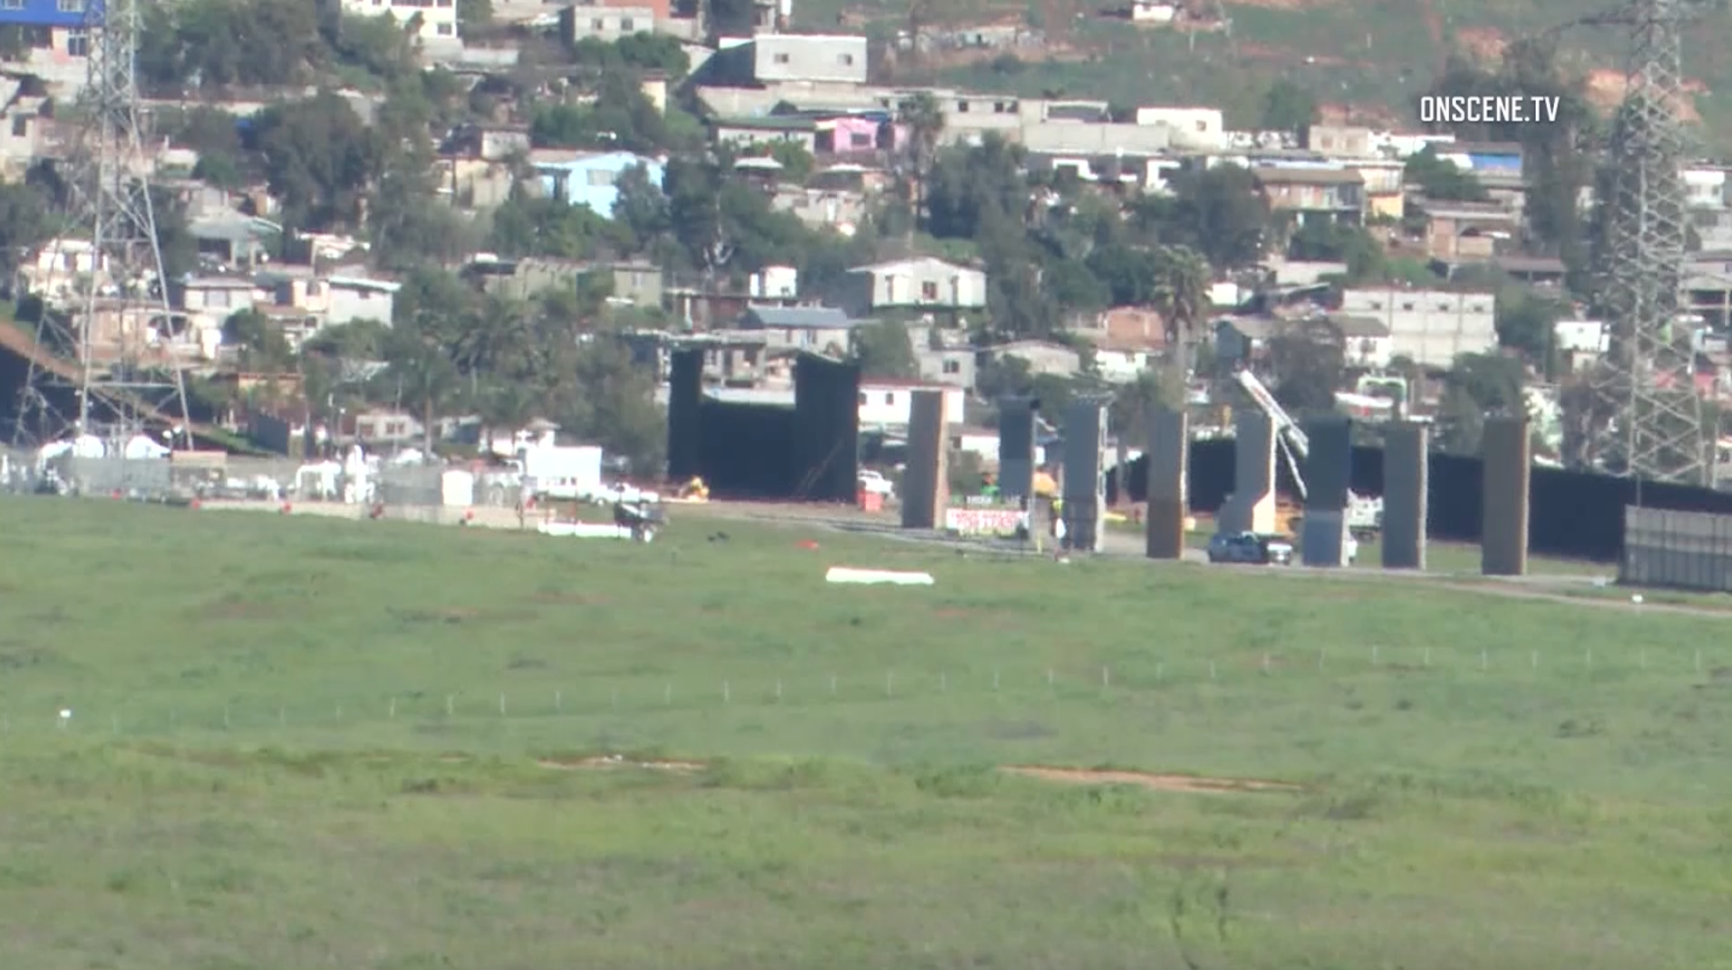 Border barrier construction was in progress at the U.S.-Mexico border in Otay Mesa, south of San Diego, on Feb. 19, 2019. (Credit: OnScene.TV via CNN)